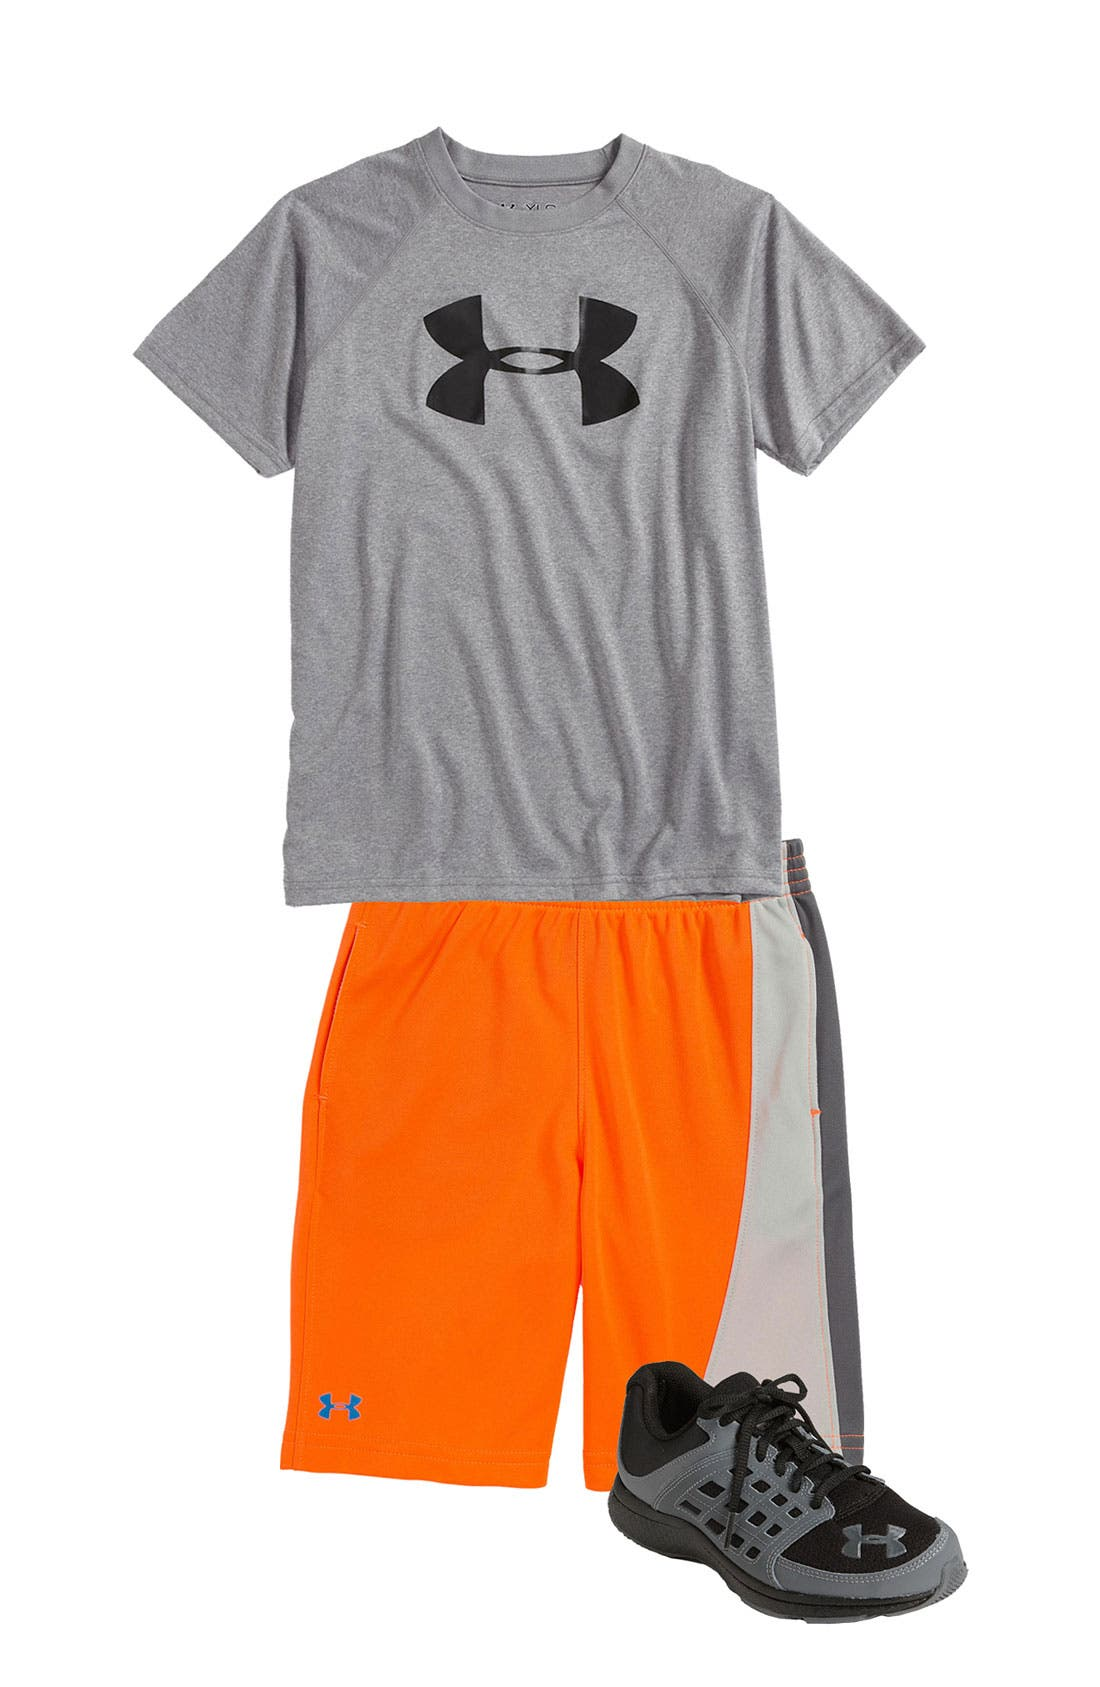 Alternate Image 1 Selected - Under Armour T-Shirt, Shorts & Sneaker (Little Boys)